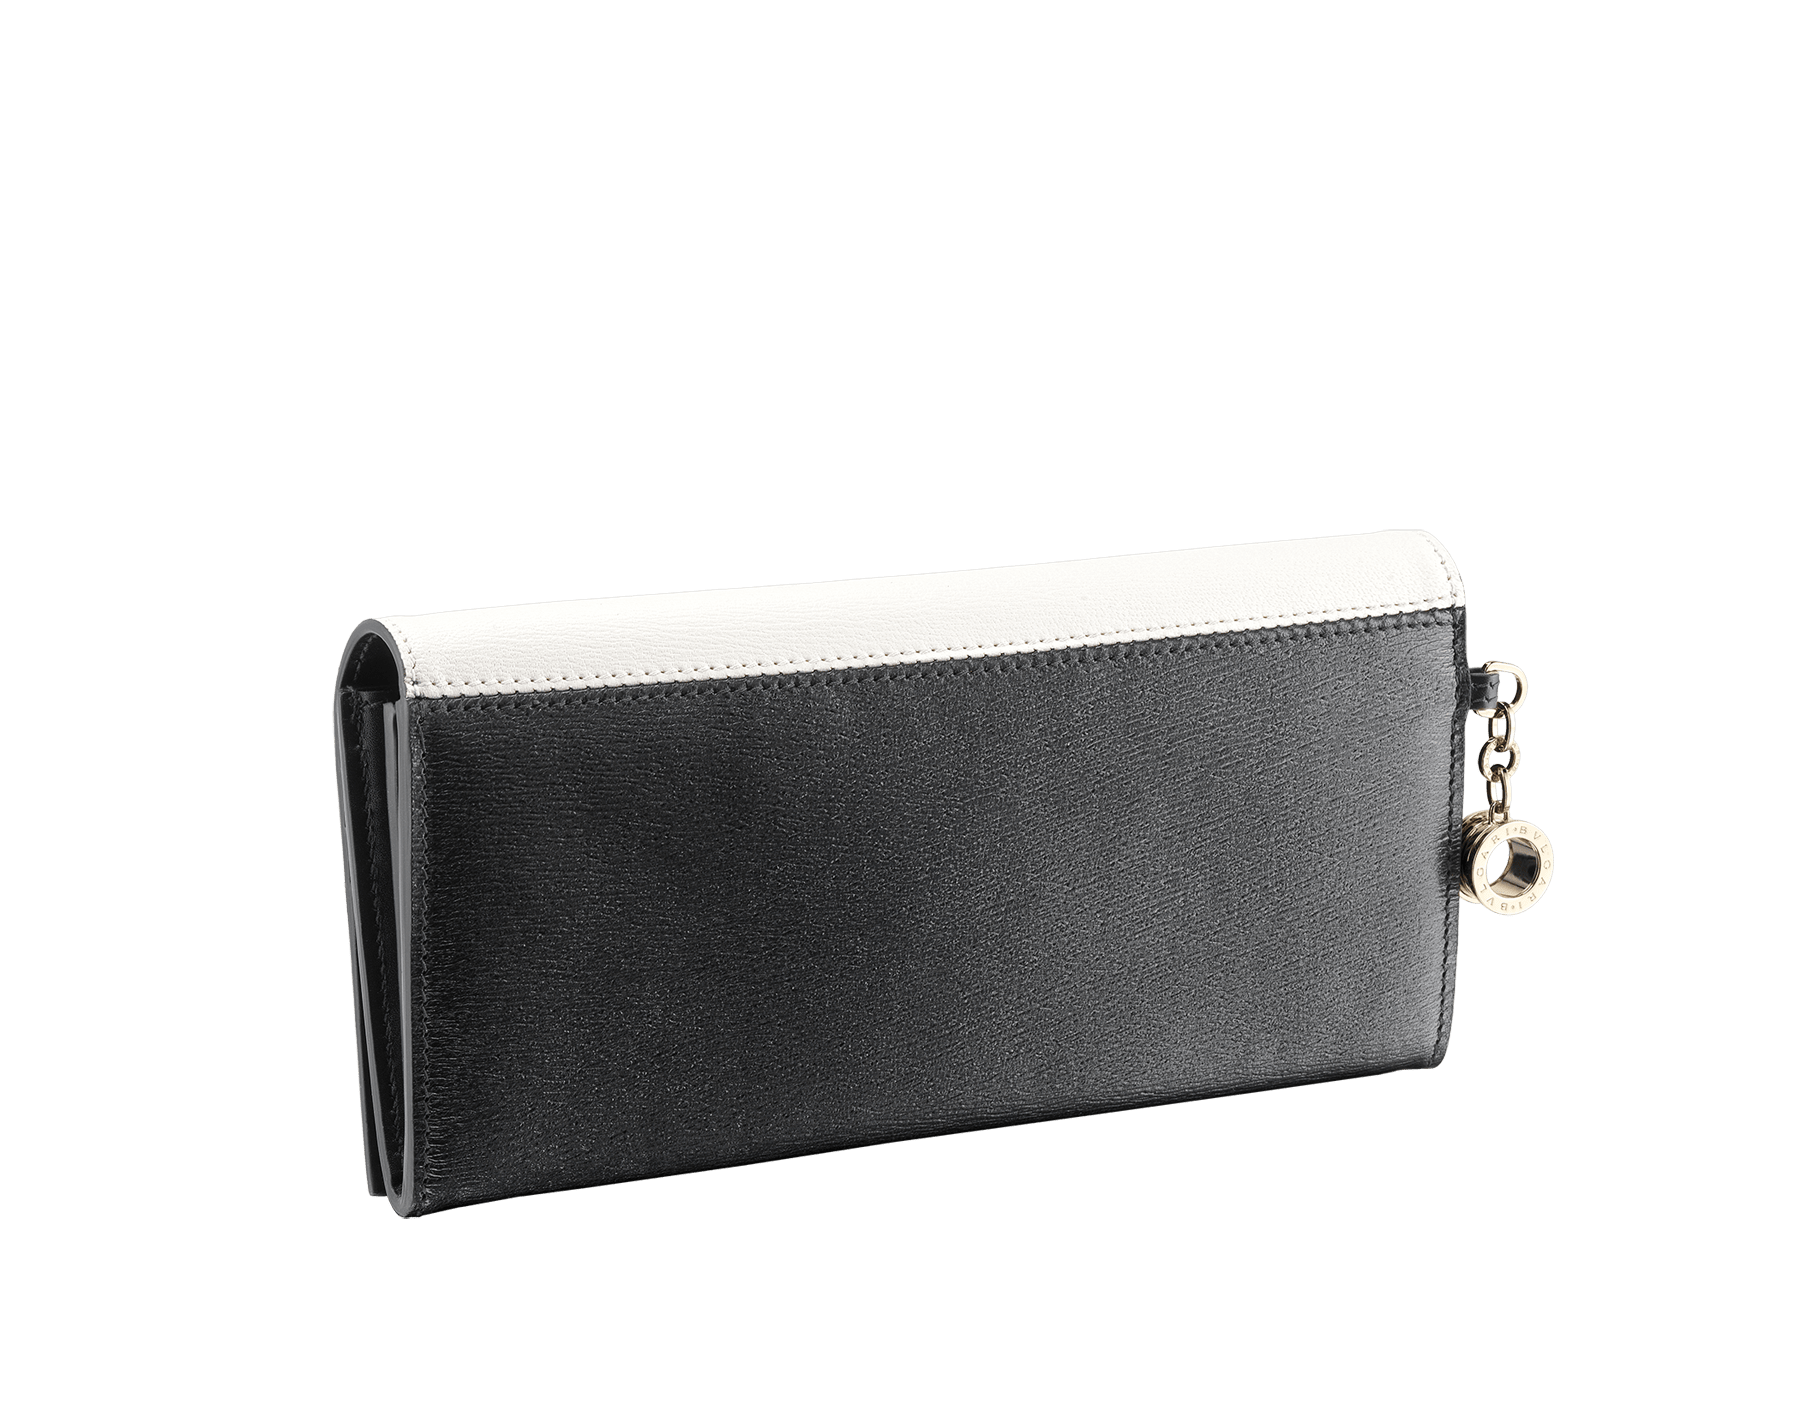 B.zero1 wallet pochette in white and black goatskin. Iconic B.zero1 charm in light gold plated brass and closure clip. 288231 image 6